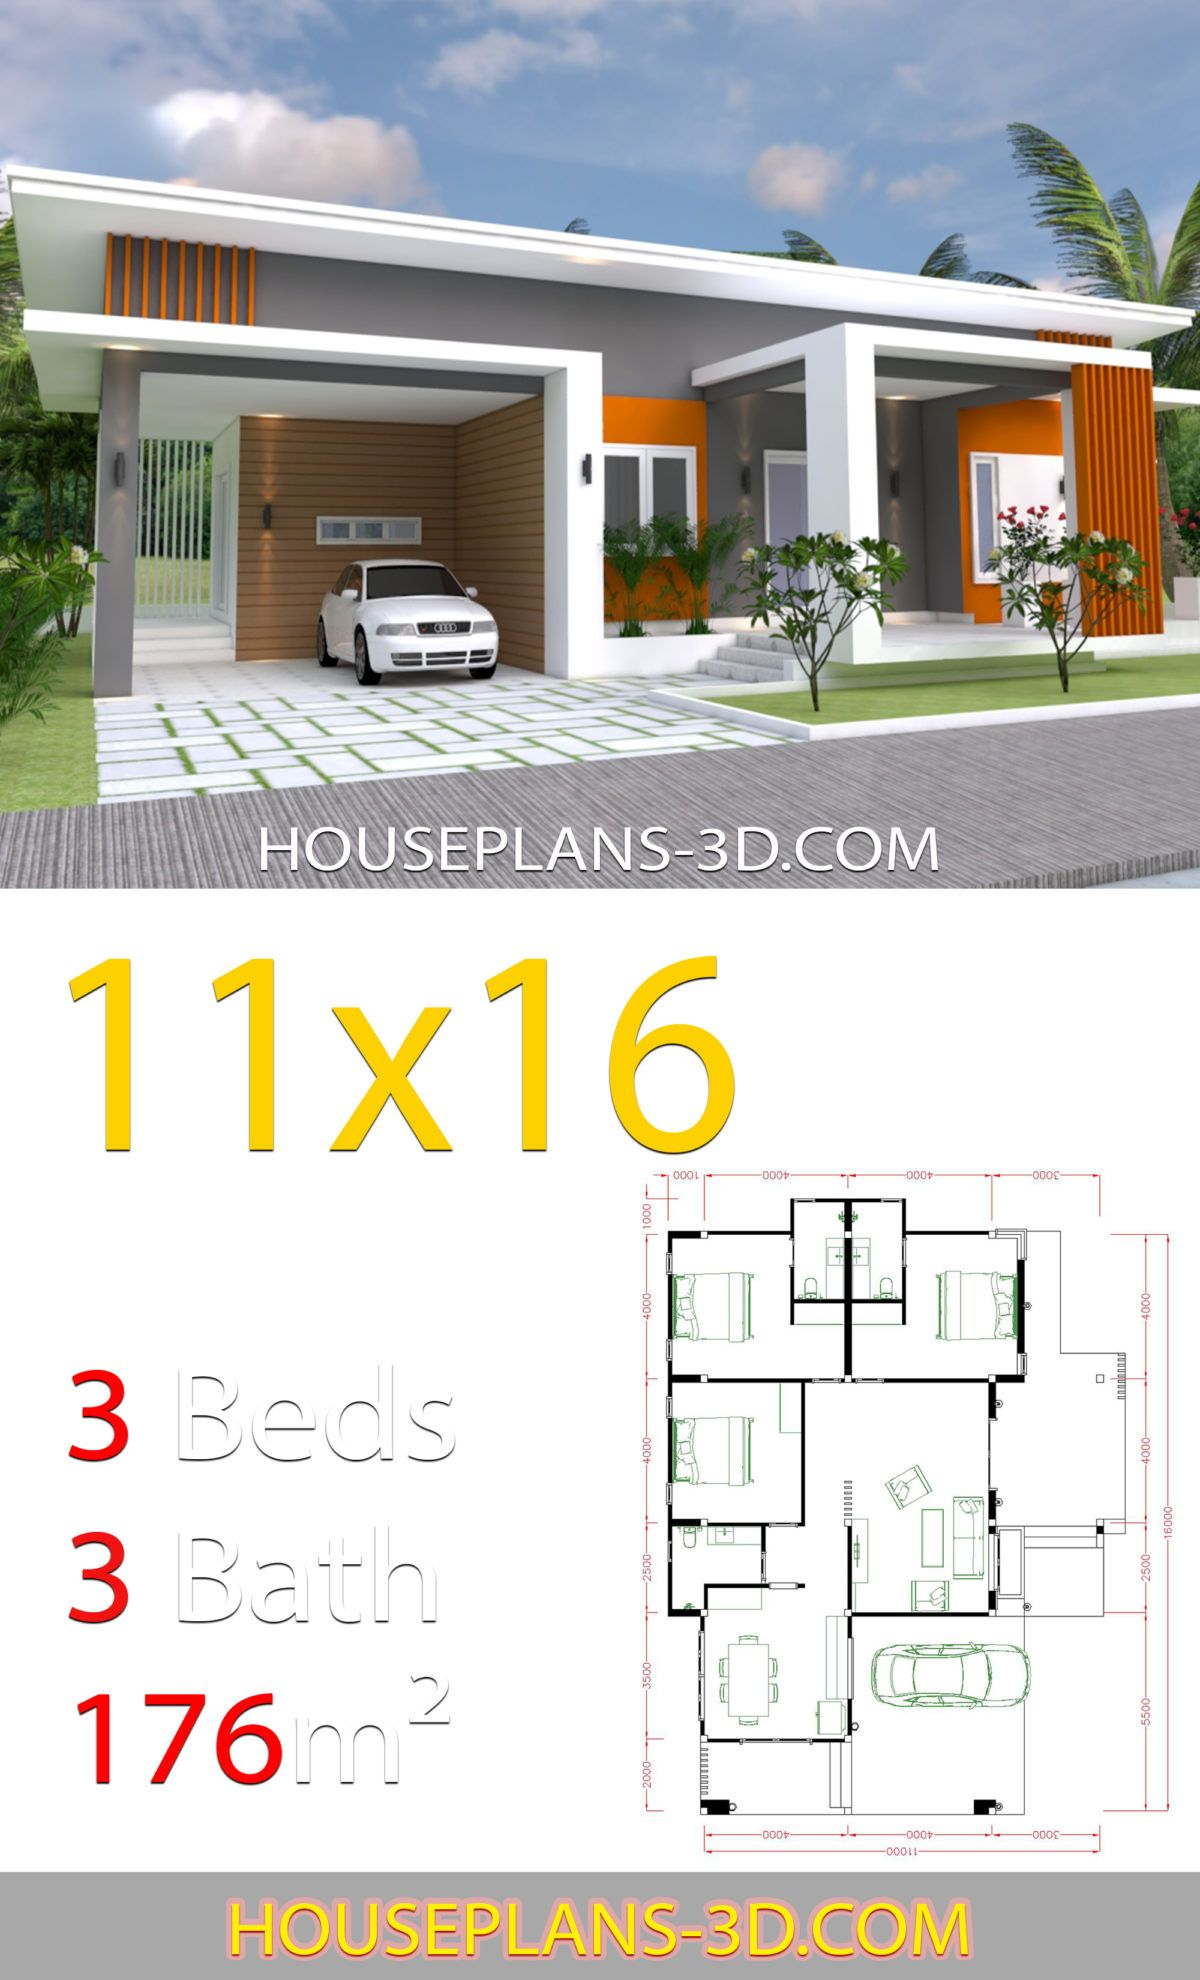 Home Design 11x16 With 3 Bedrooms Slop Roof House Plans 3d Diy House Plans House Plans House Construction Plan